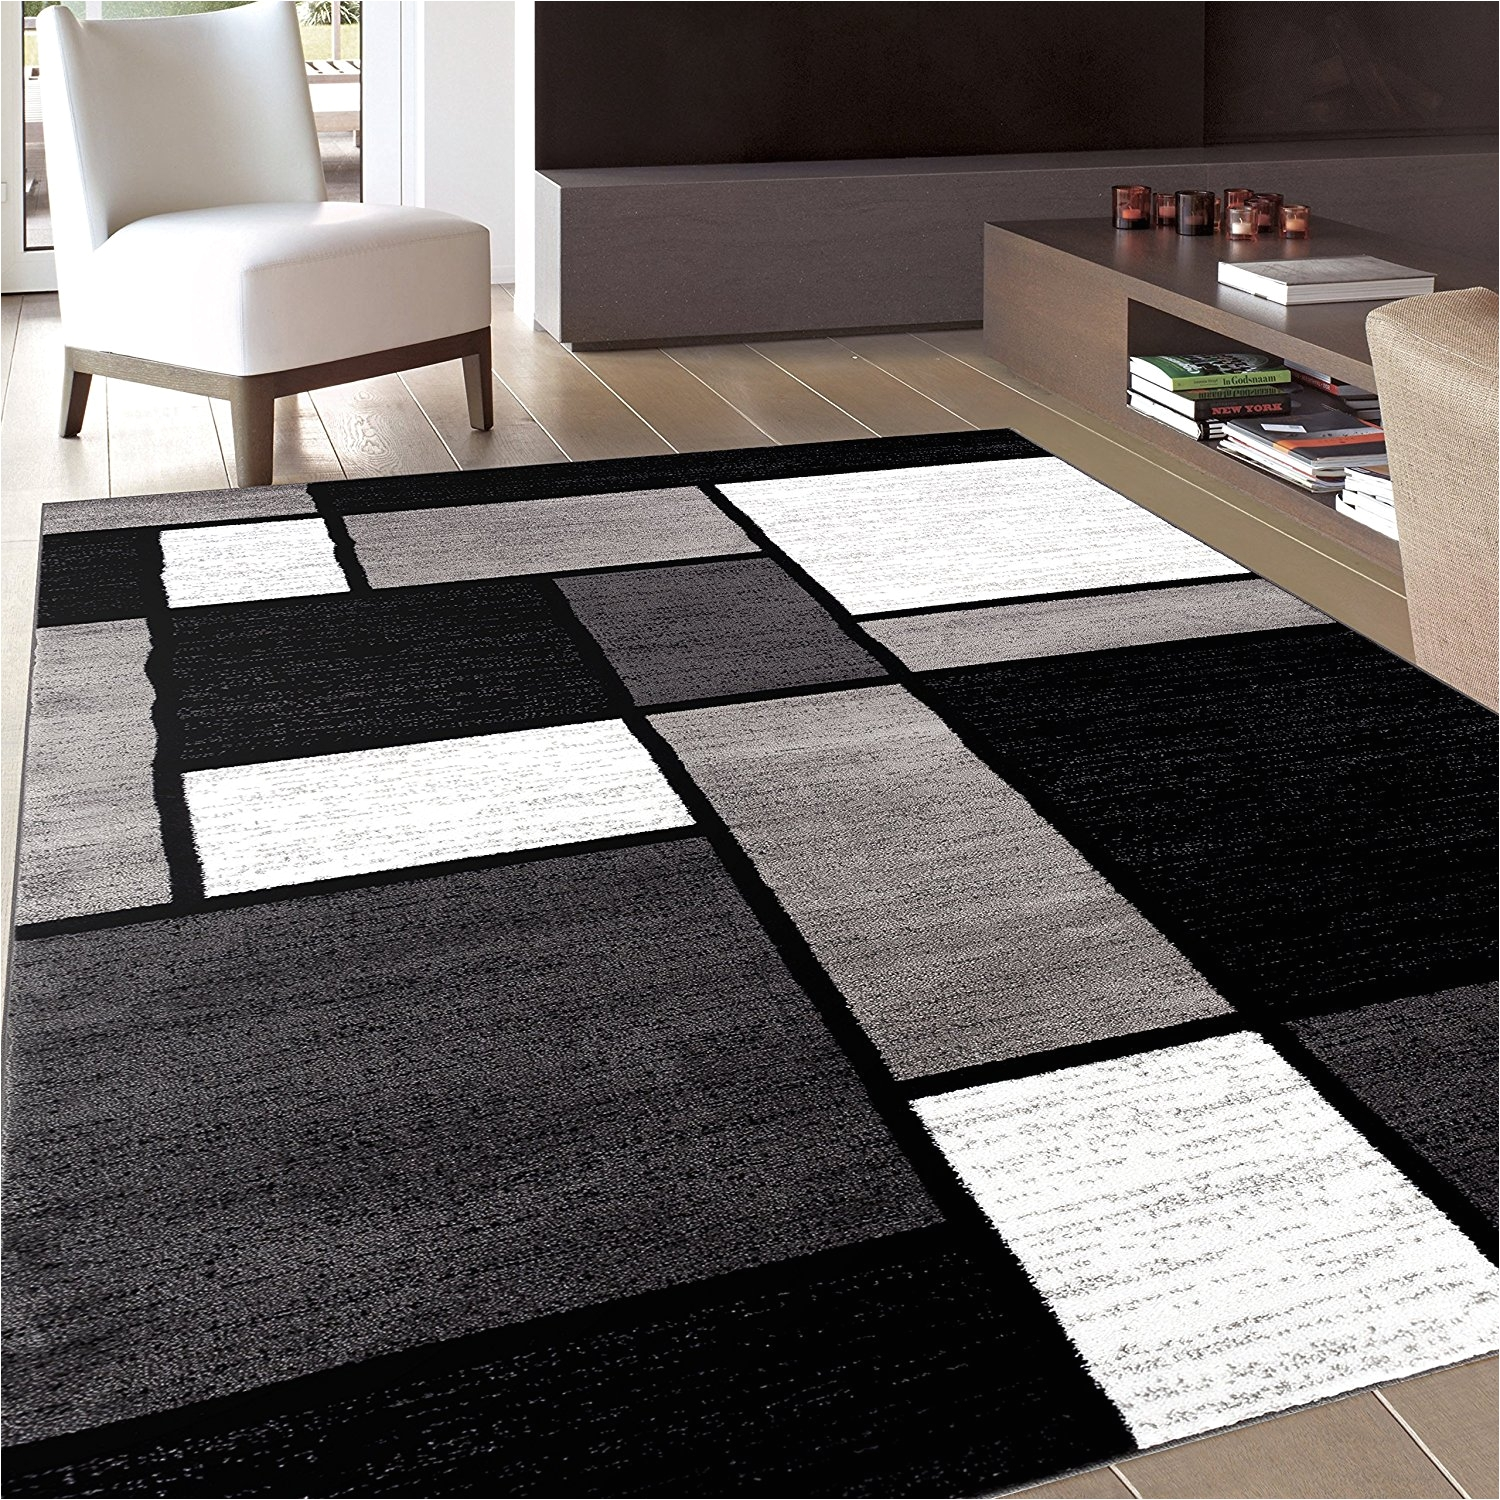 Area Rugs Under $500 Black and White area Rugs Best Rug Variety Bellissimainteriors